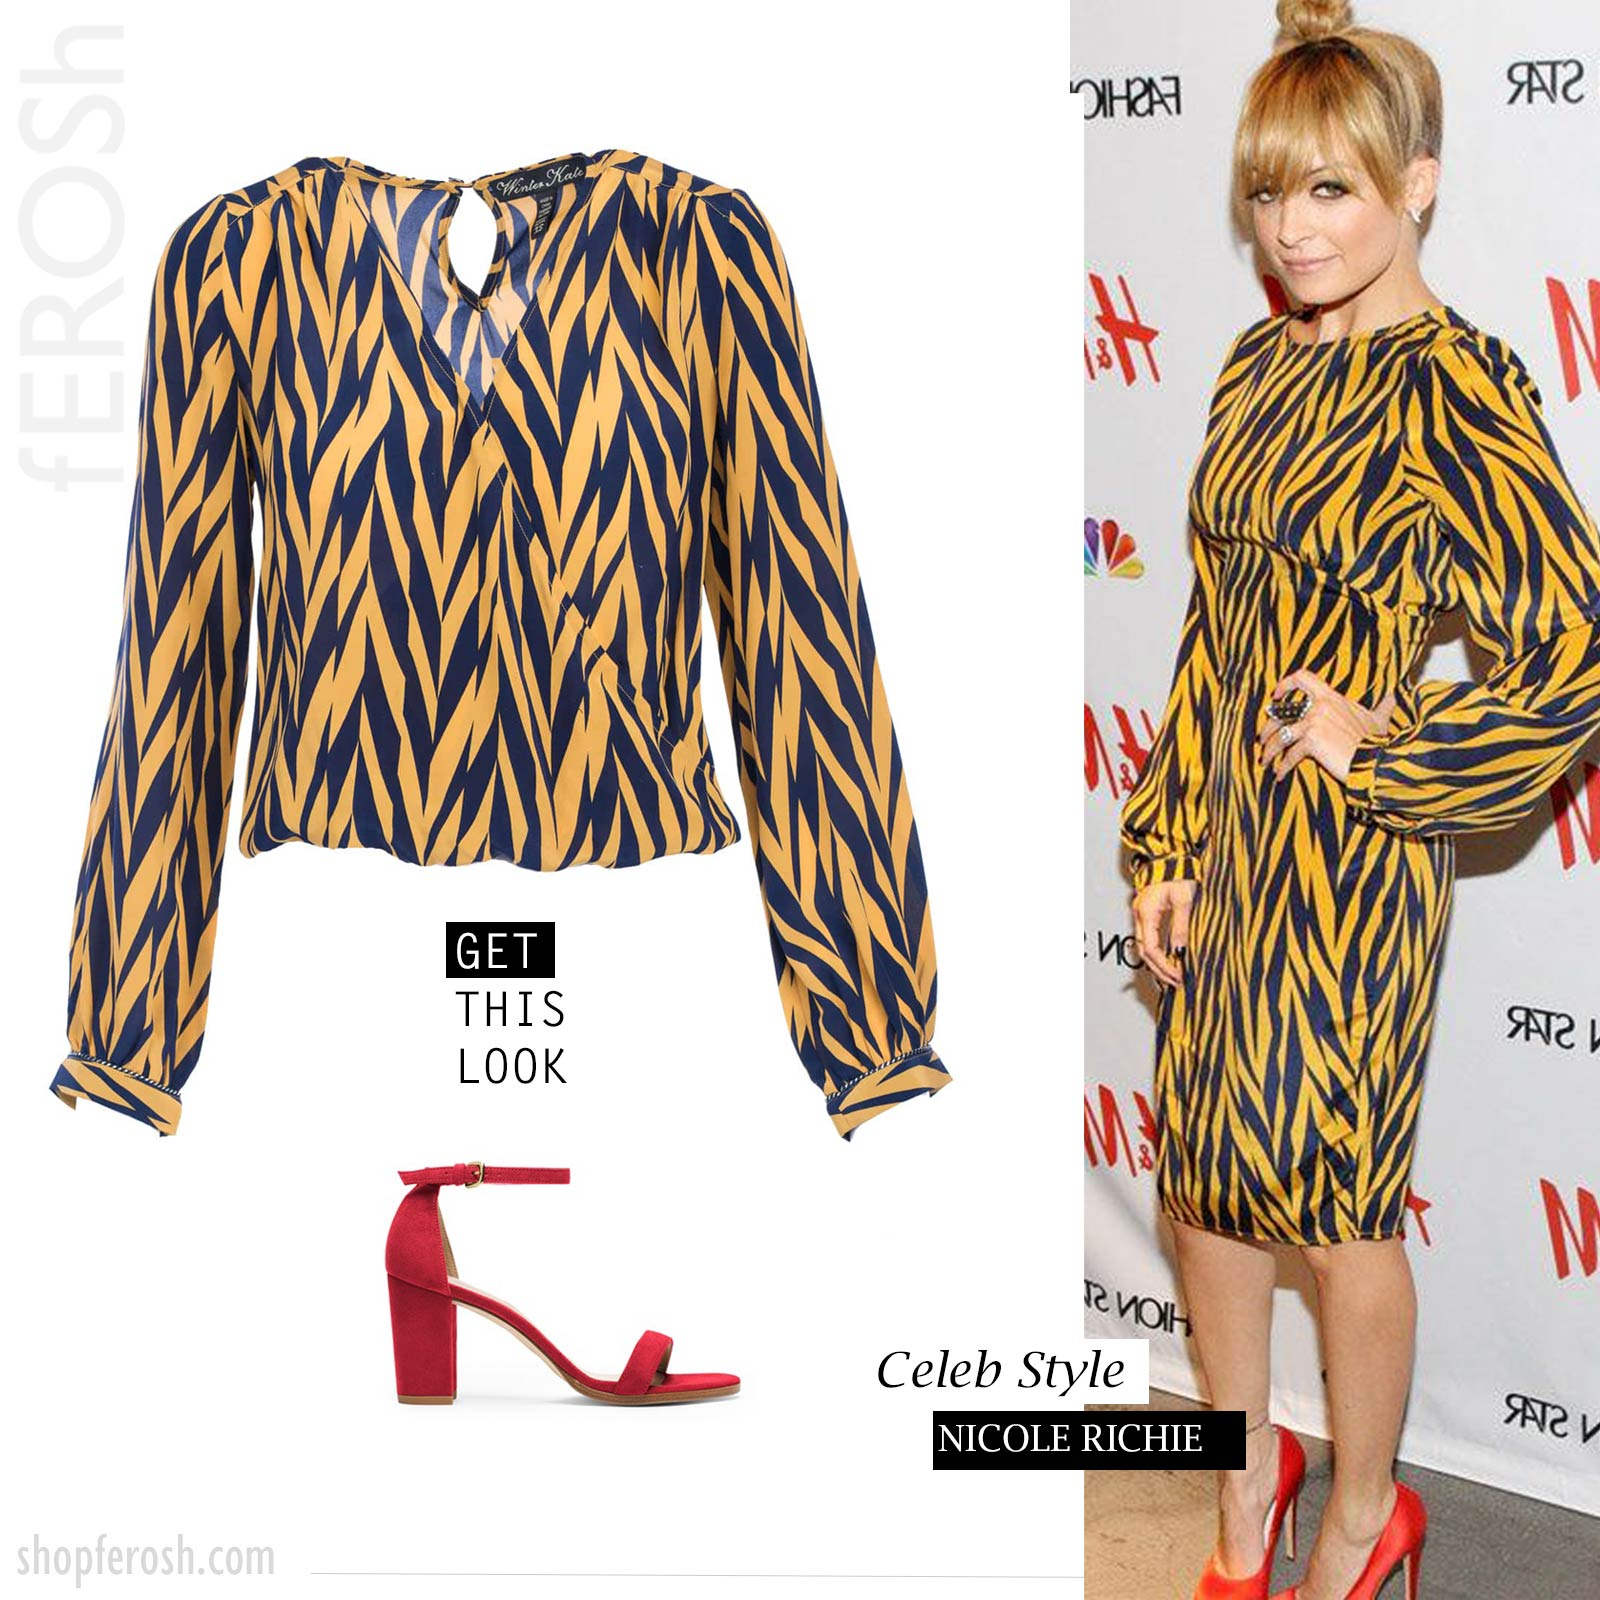 winter kate nicole richie blouse dress